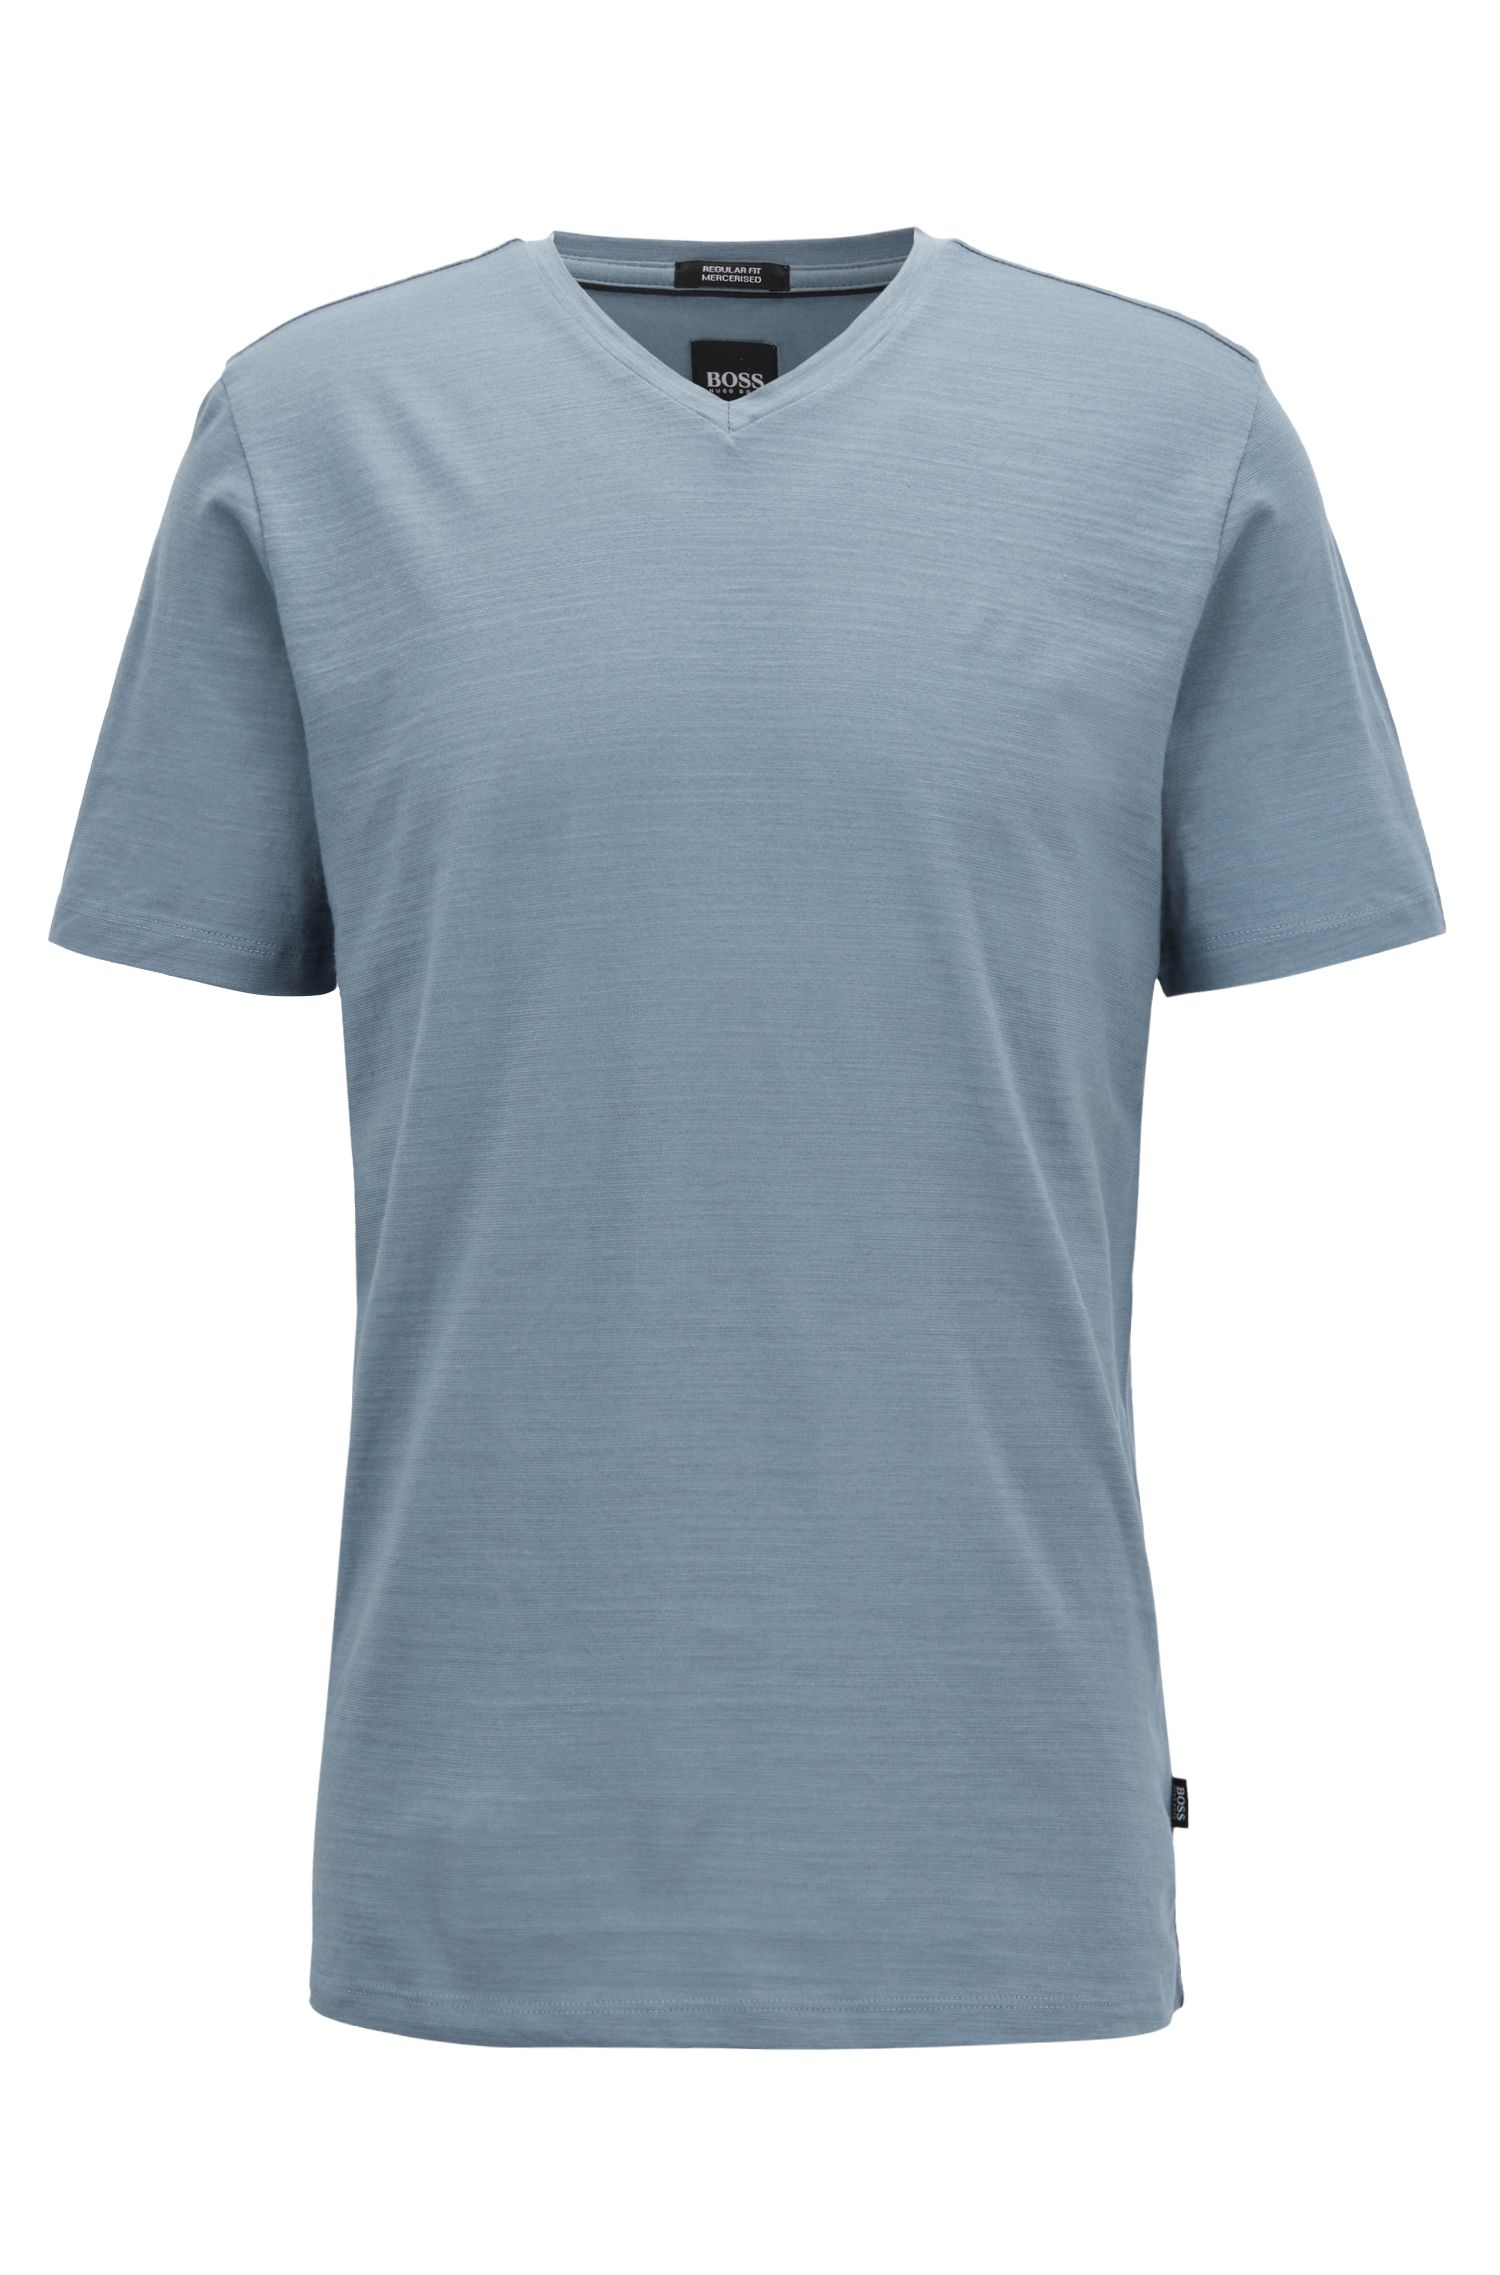 Regular-fit T-shirt in mercerized cotton, Open Blue